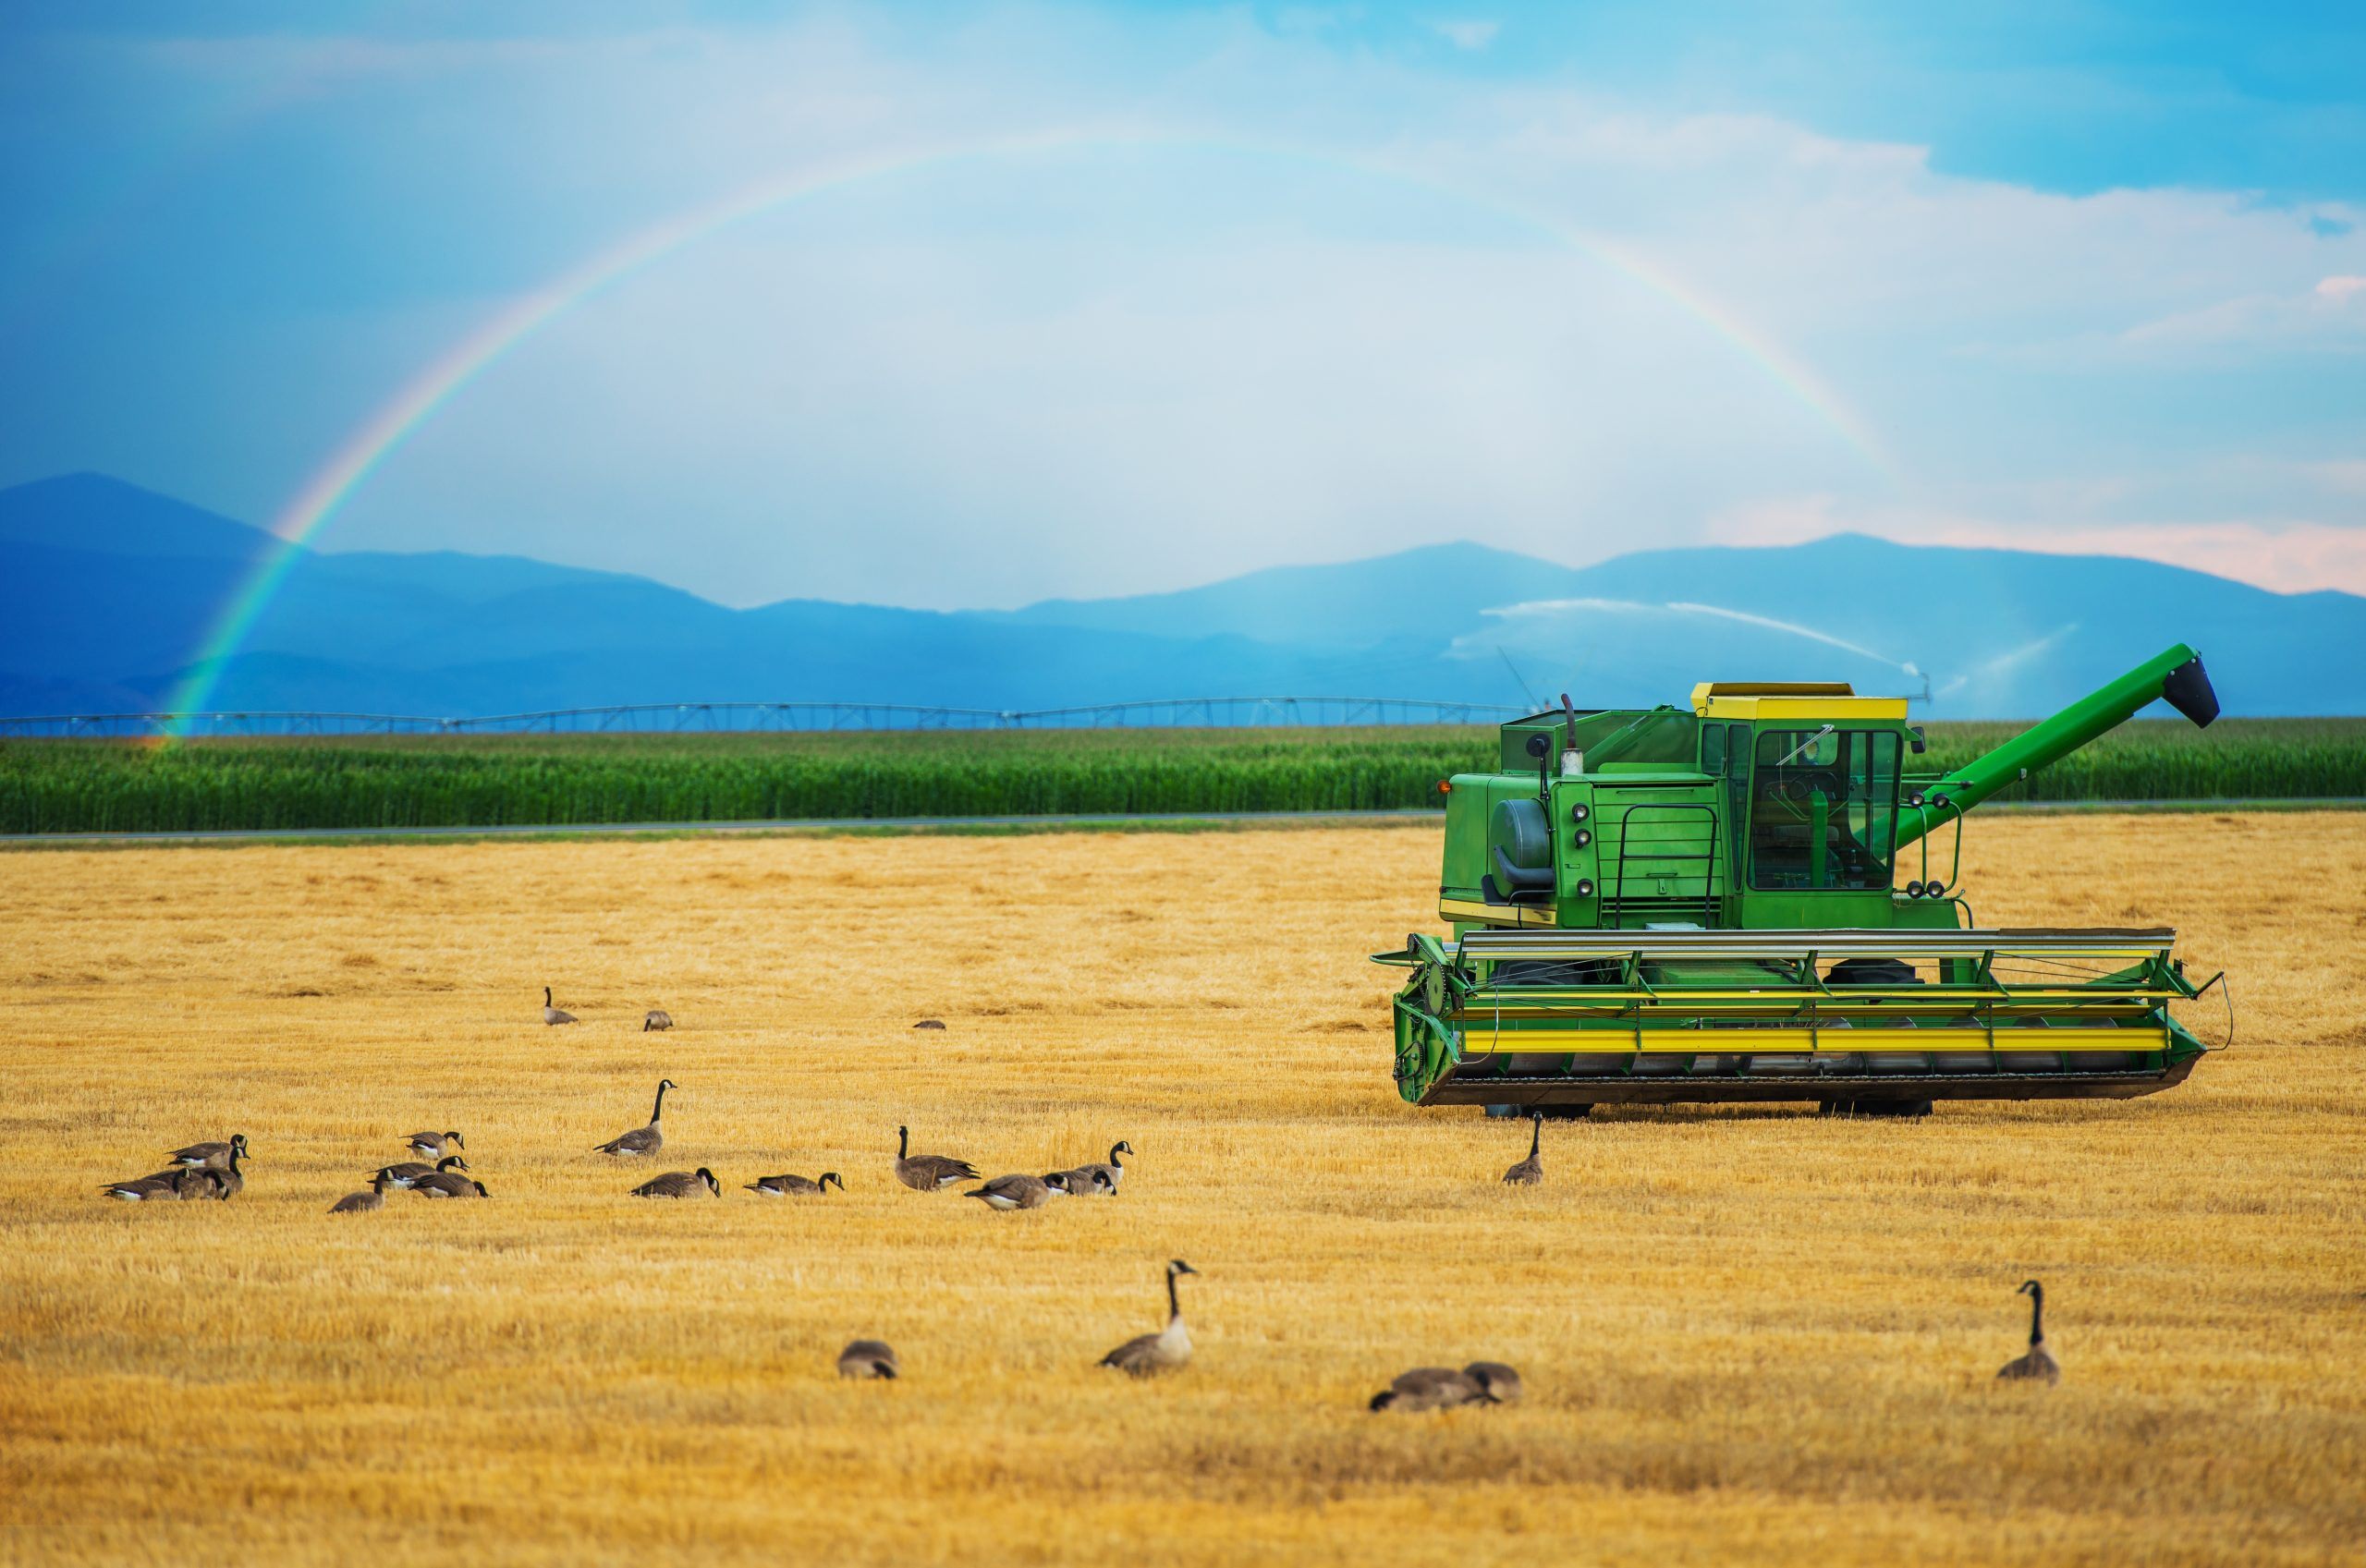 Colorado Harvesting. Modern Harvester and the Rainbow. Colorado, United States. Agriculture Theme.